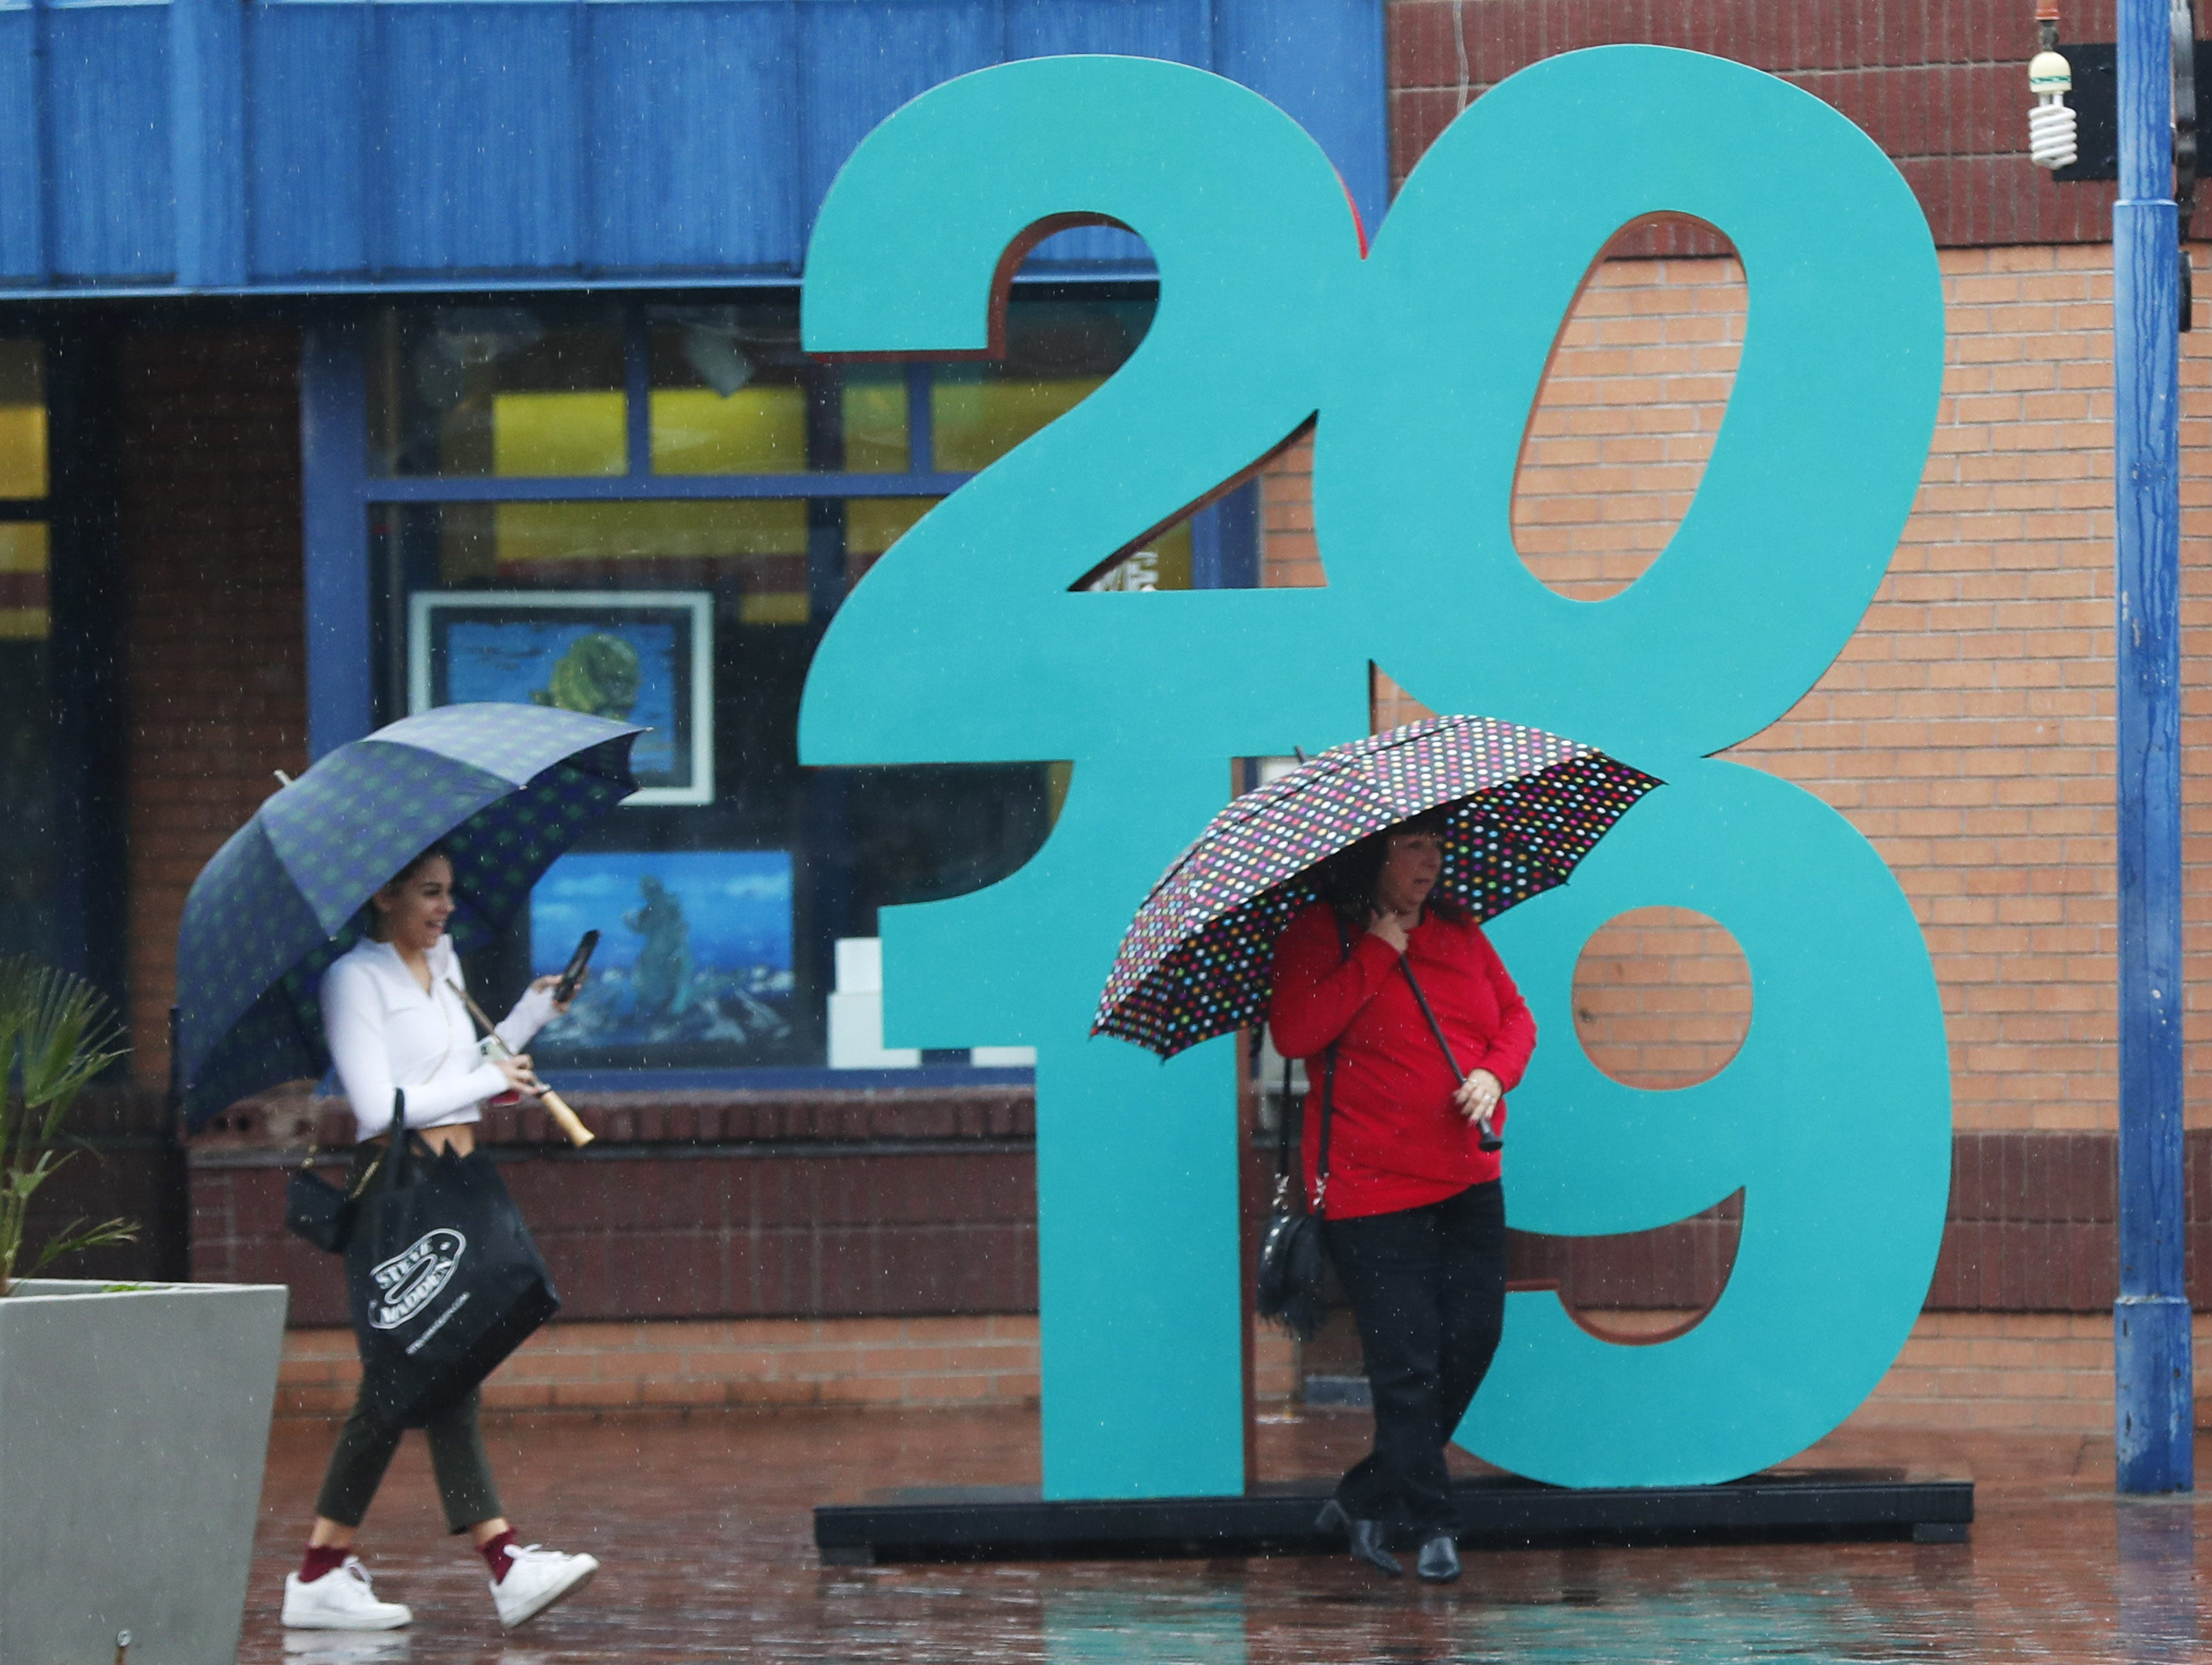 Pedestrians shield themselves from the rain near a 2019 sign in downtown Tempe on Dec. 31, 2018.